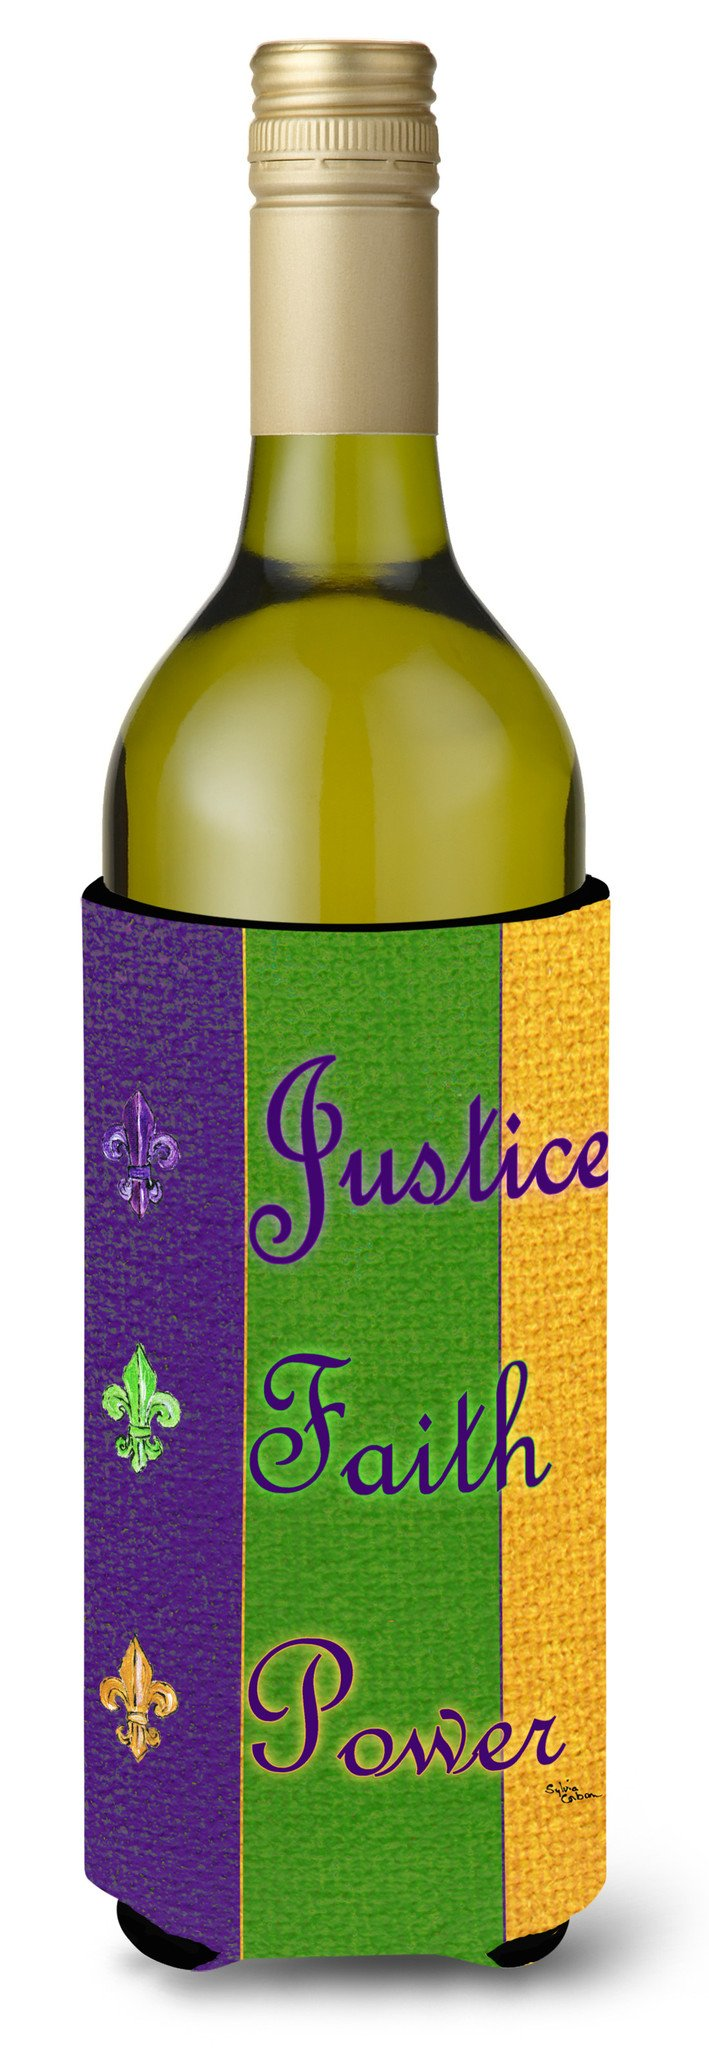 Mardi Gras Peace Faith and Justice Wine Bottle Beverage Insulator Beverage Insulator Hugger by Caroline's Treasures